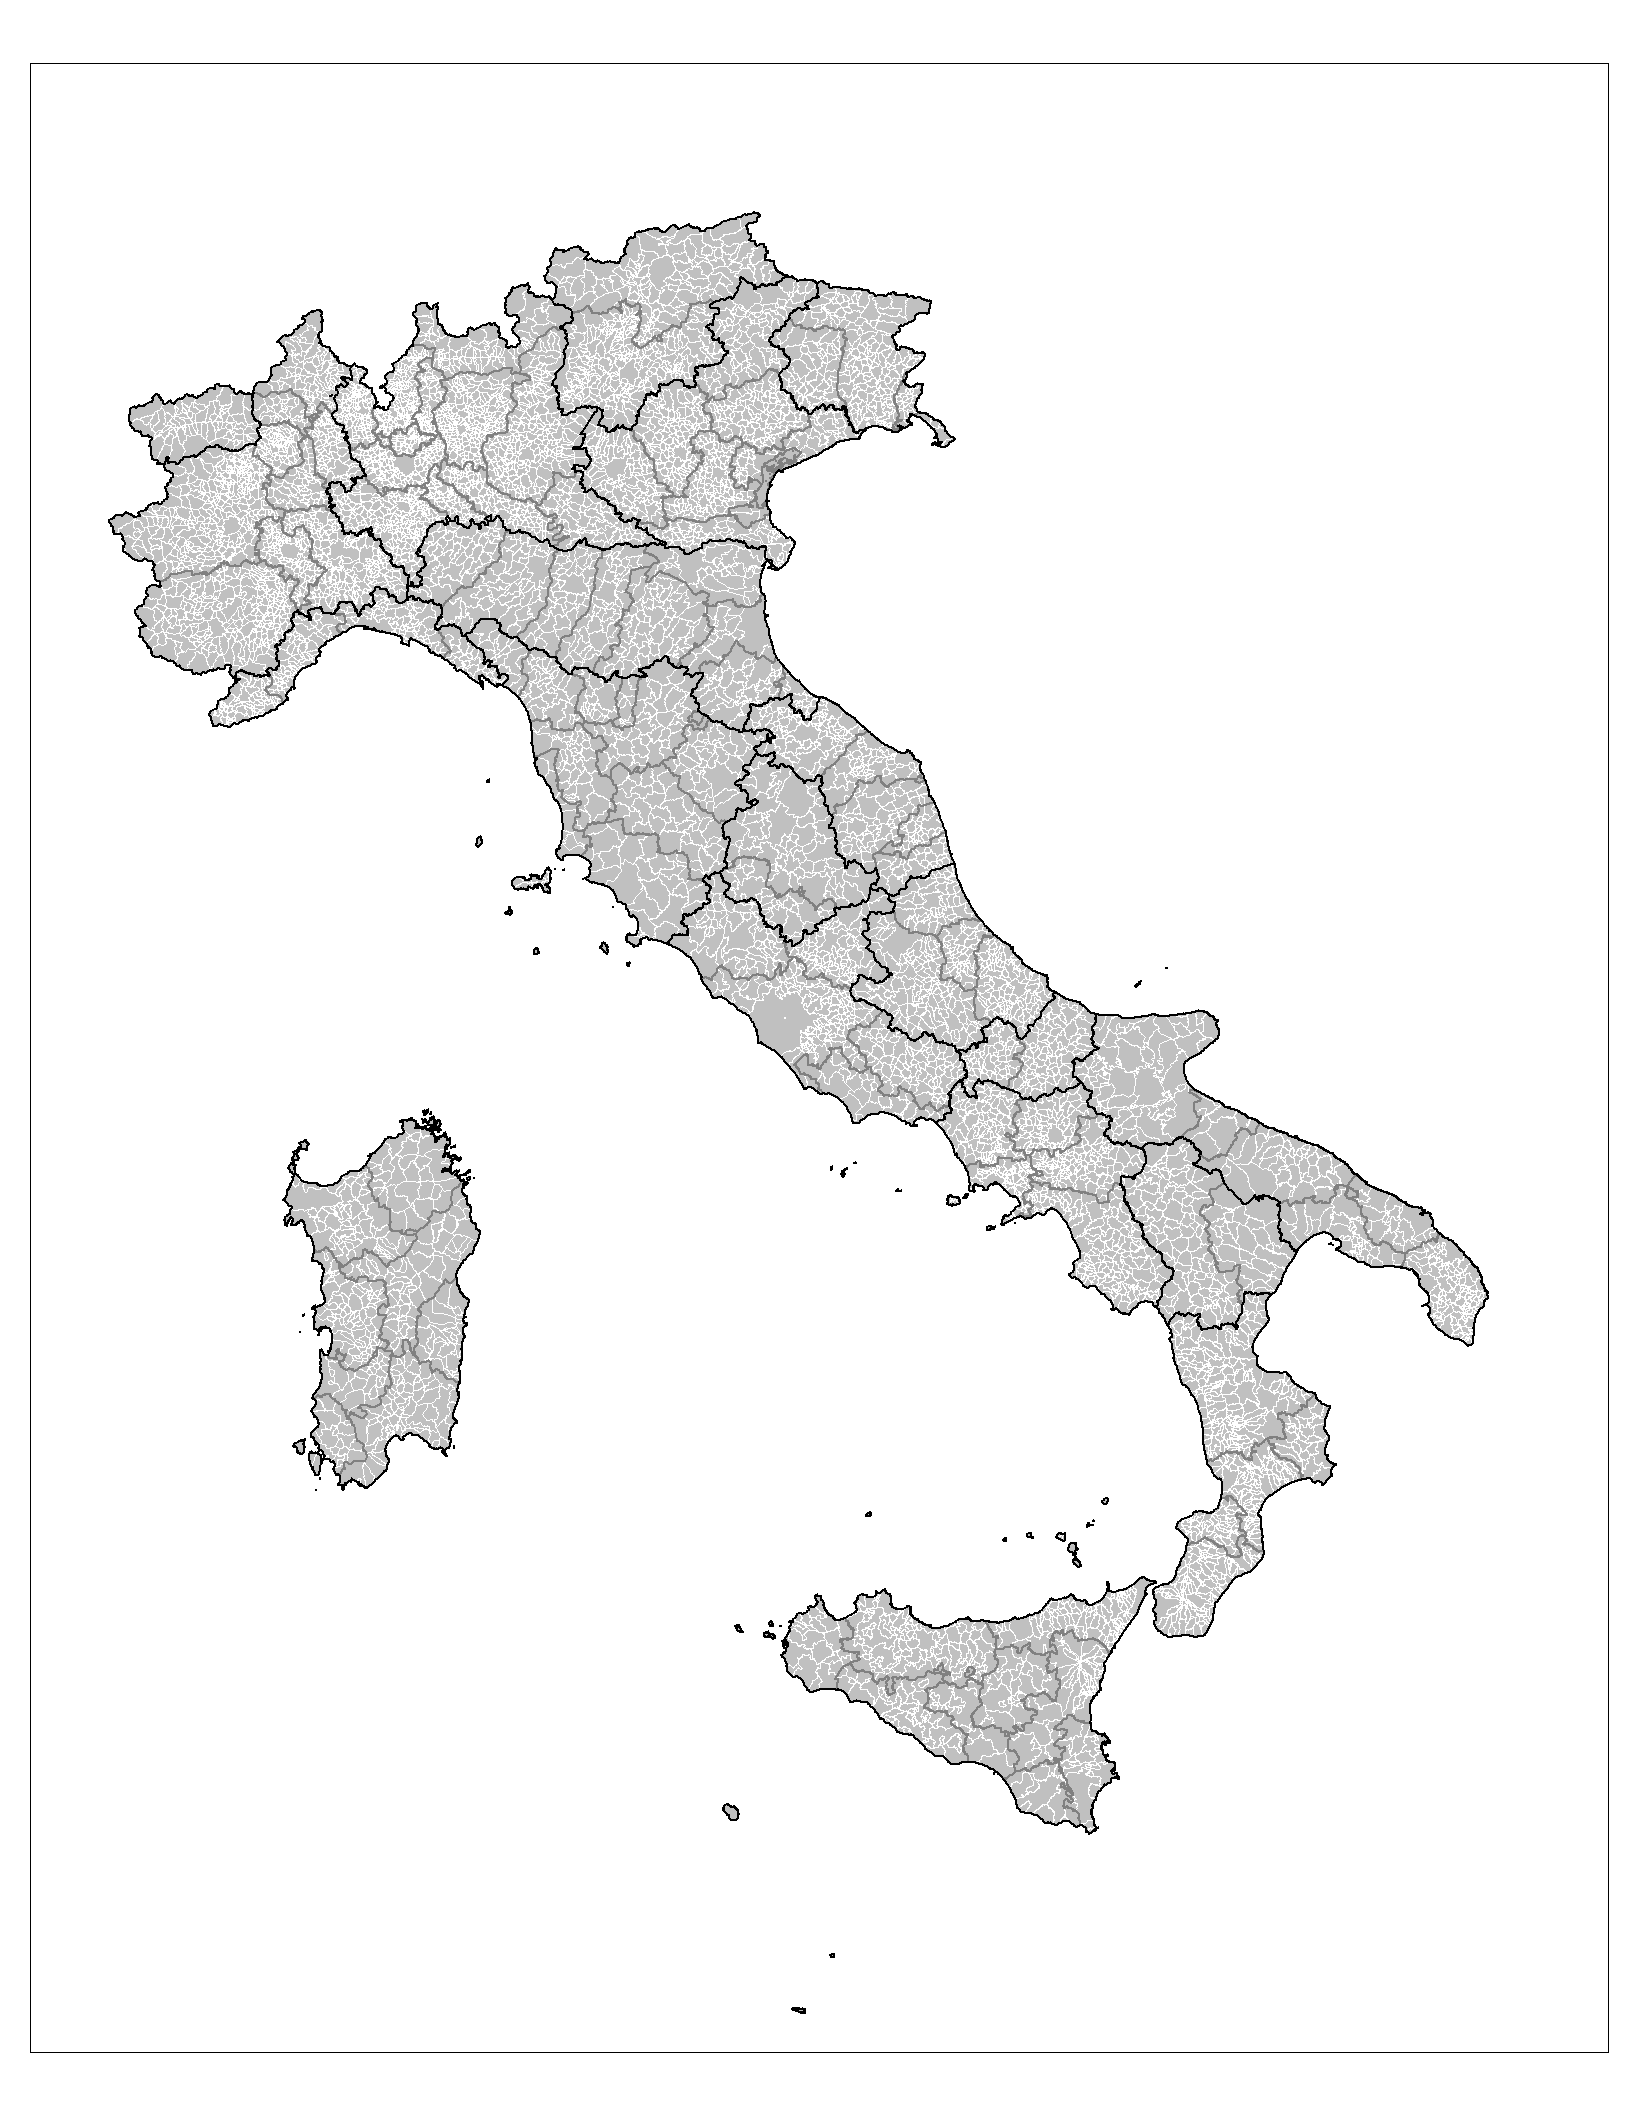 Map Of Provinces In Italy.File Administrative Map Of Italy Showing Regions Provinces And